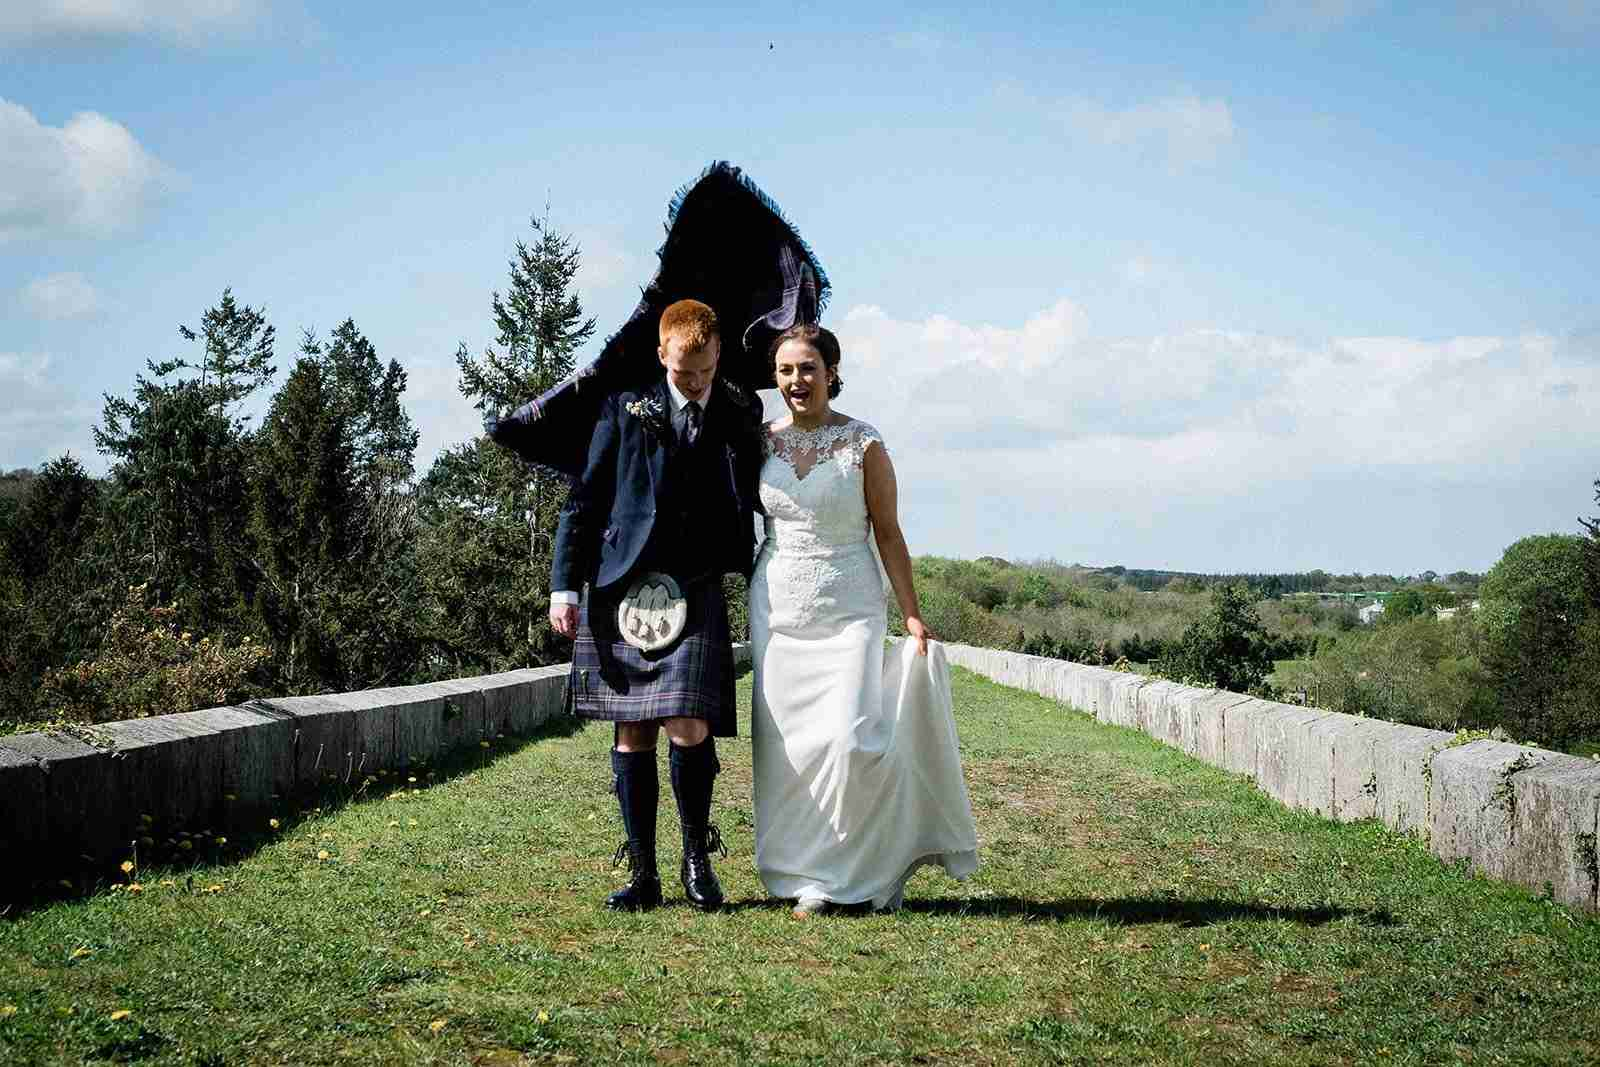 A wedding portrait in Ireland